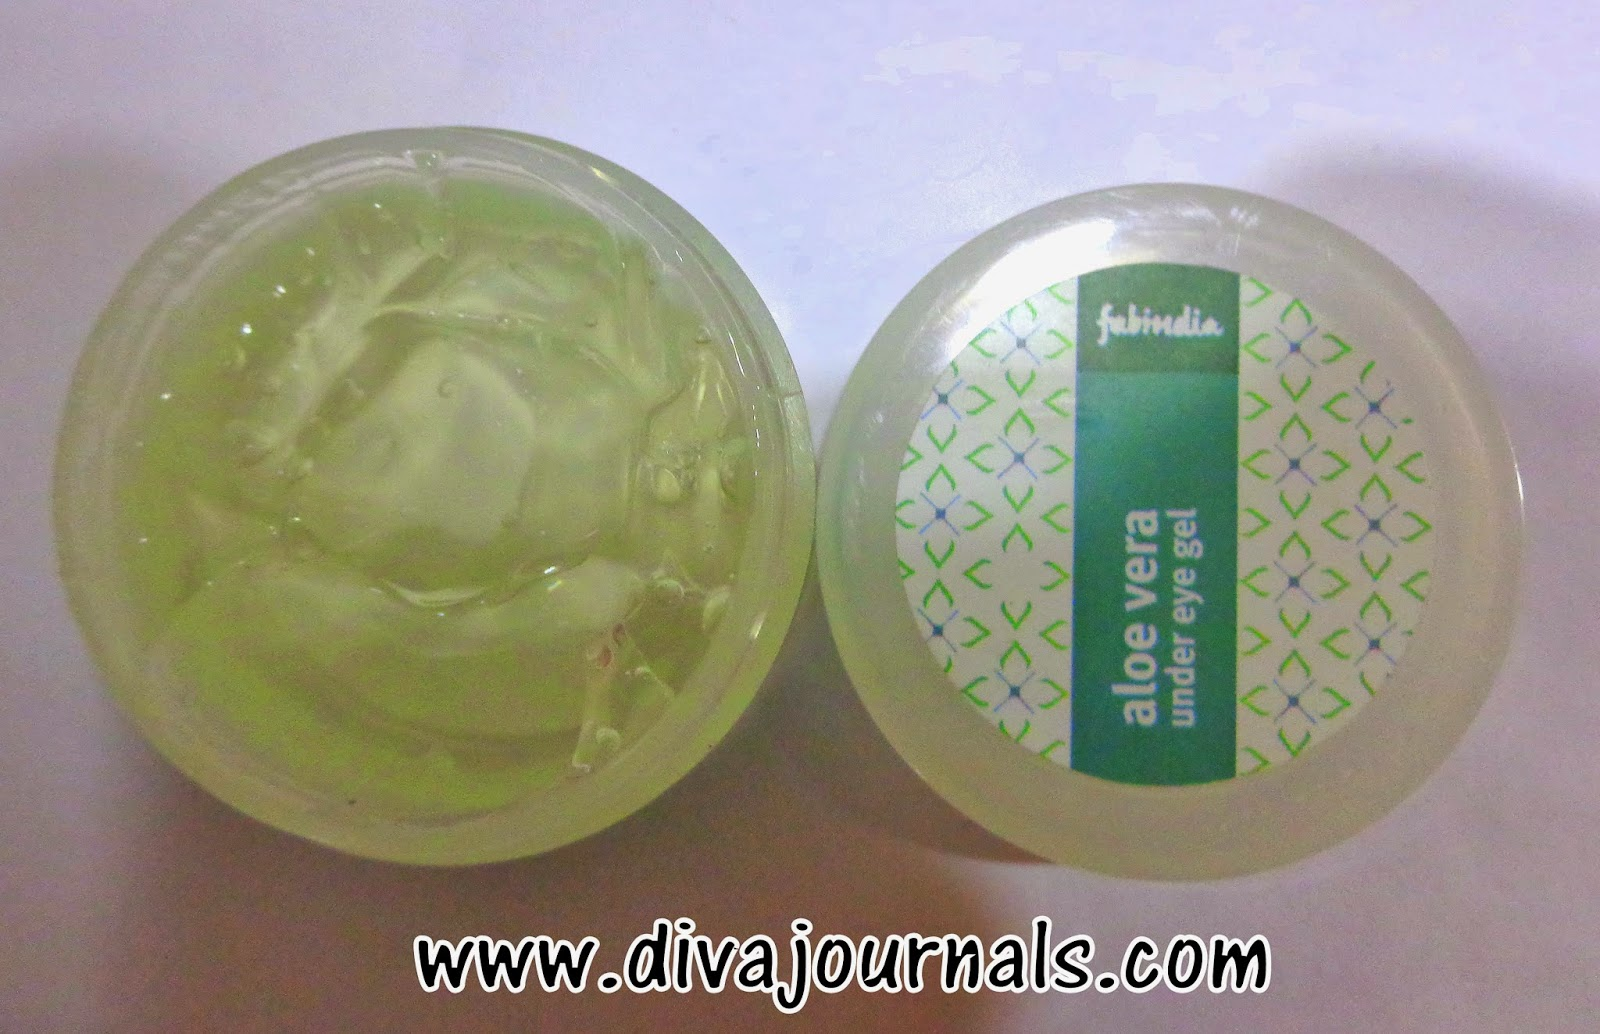 FabIndia Aloe Vera Under Eye Gel Review